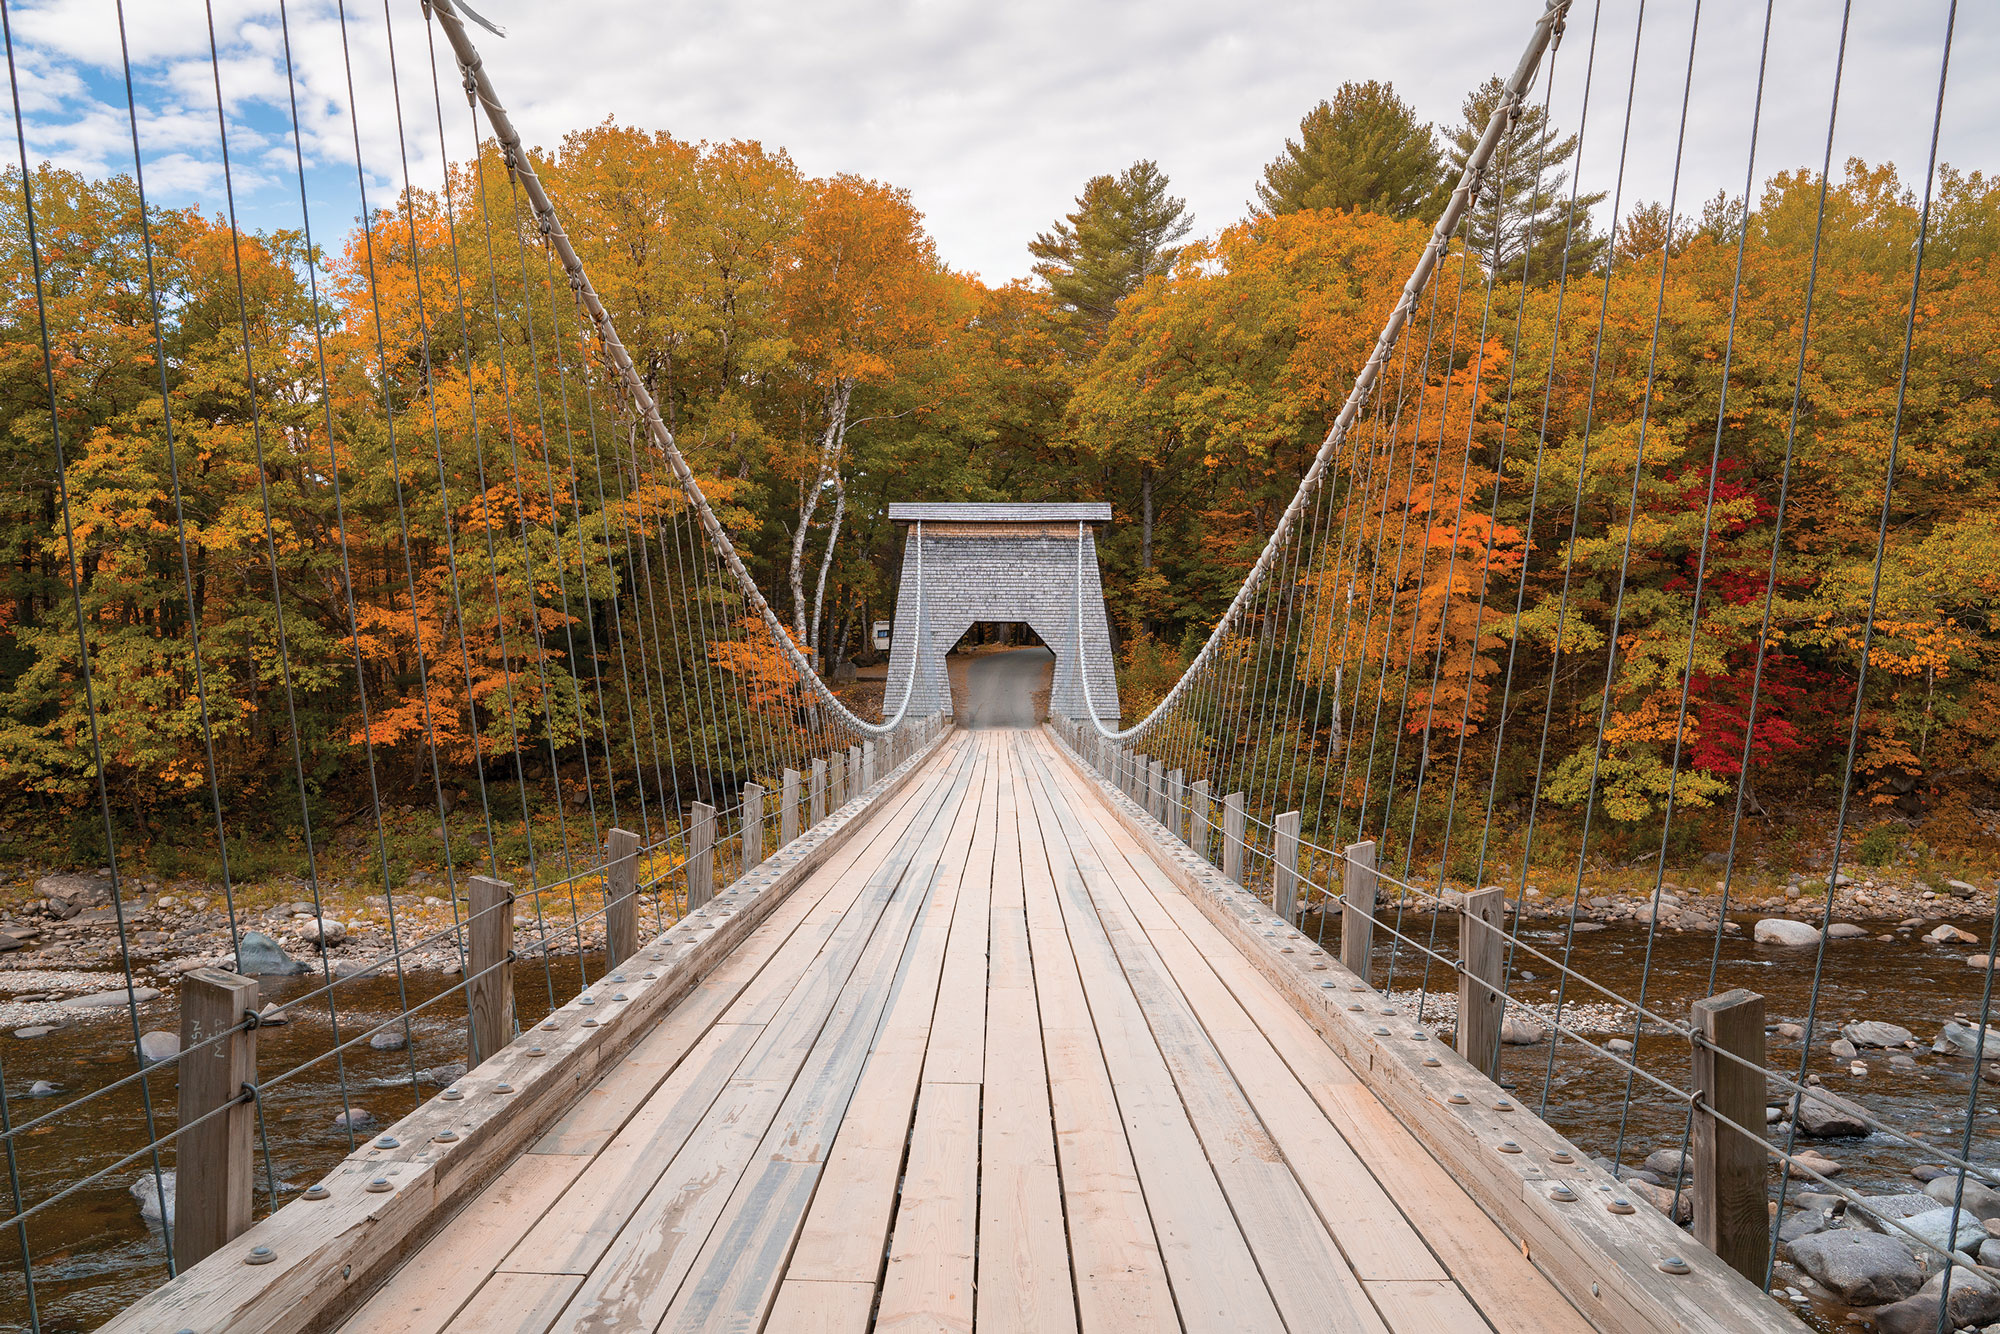 the historic wire bridge over the Carrabassett River, off Route 27 in New Portland